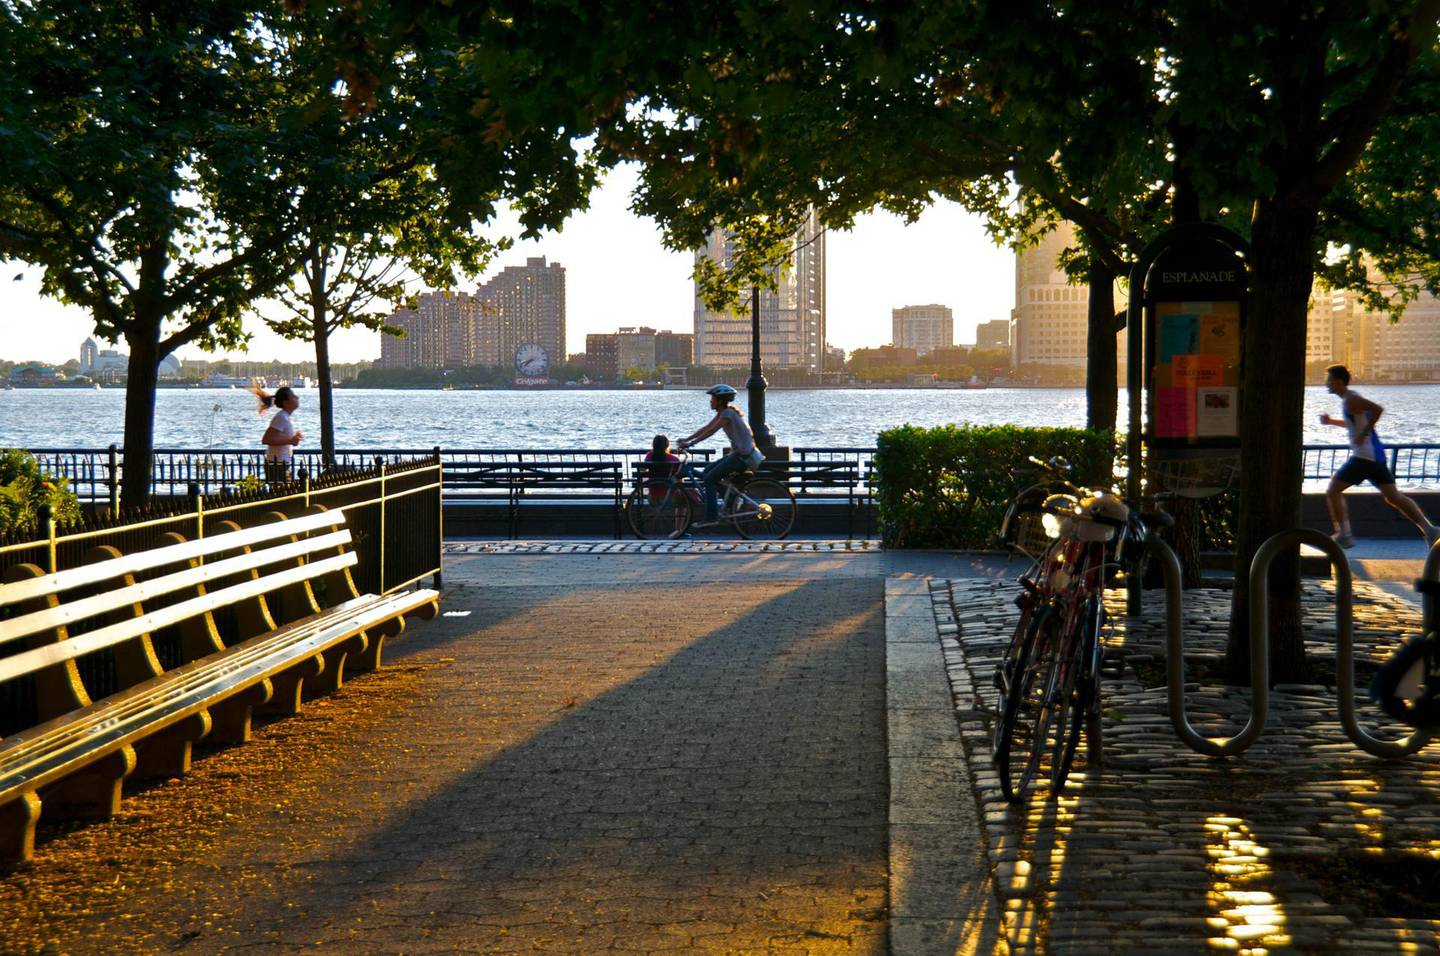 """""""New York City, USA - August 18, 2012: A bicyclist  and runners are seen passing by a woman sitting along the Battery Park City Promenade during a summer sunset over the Hudson River, Lower Manhattan."""" Getty Images"""